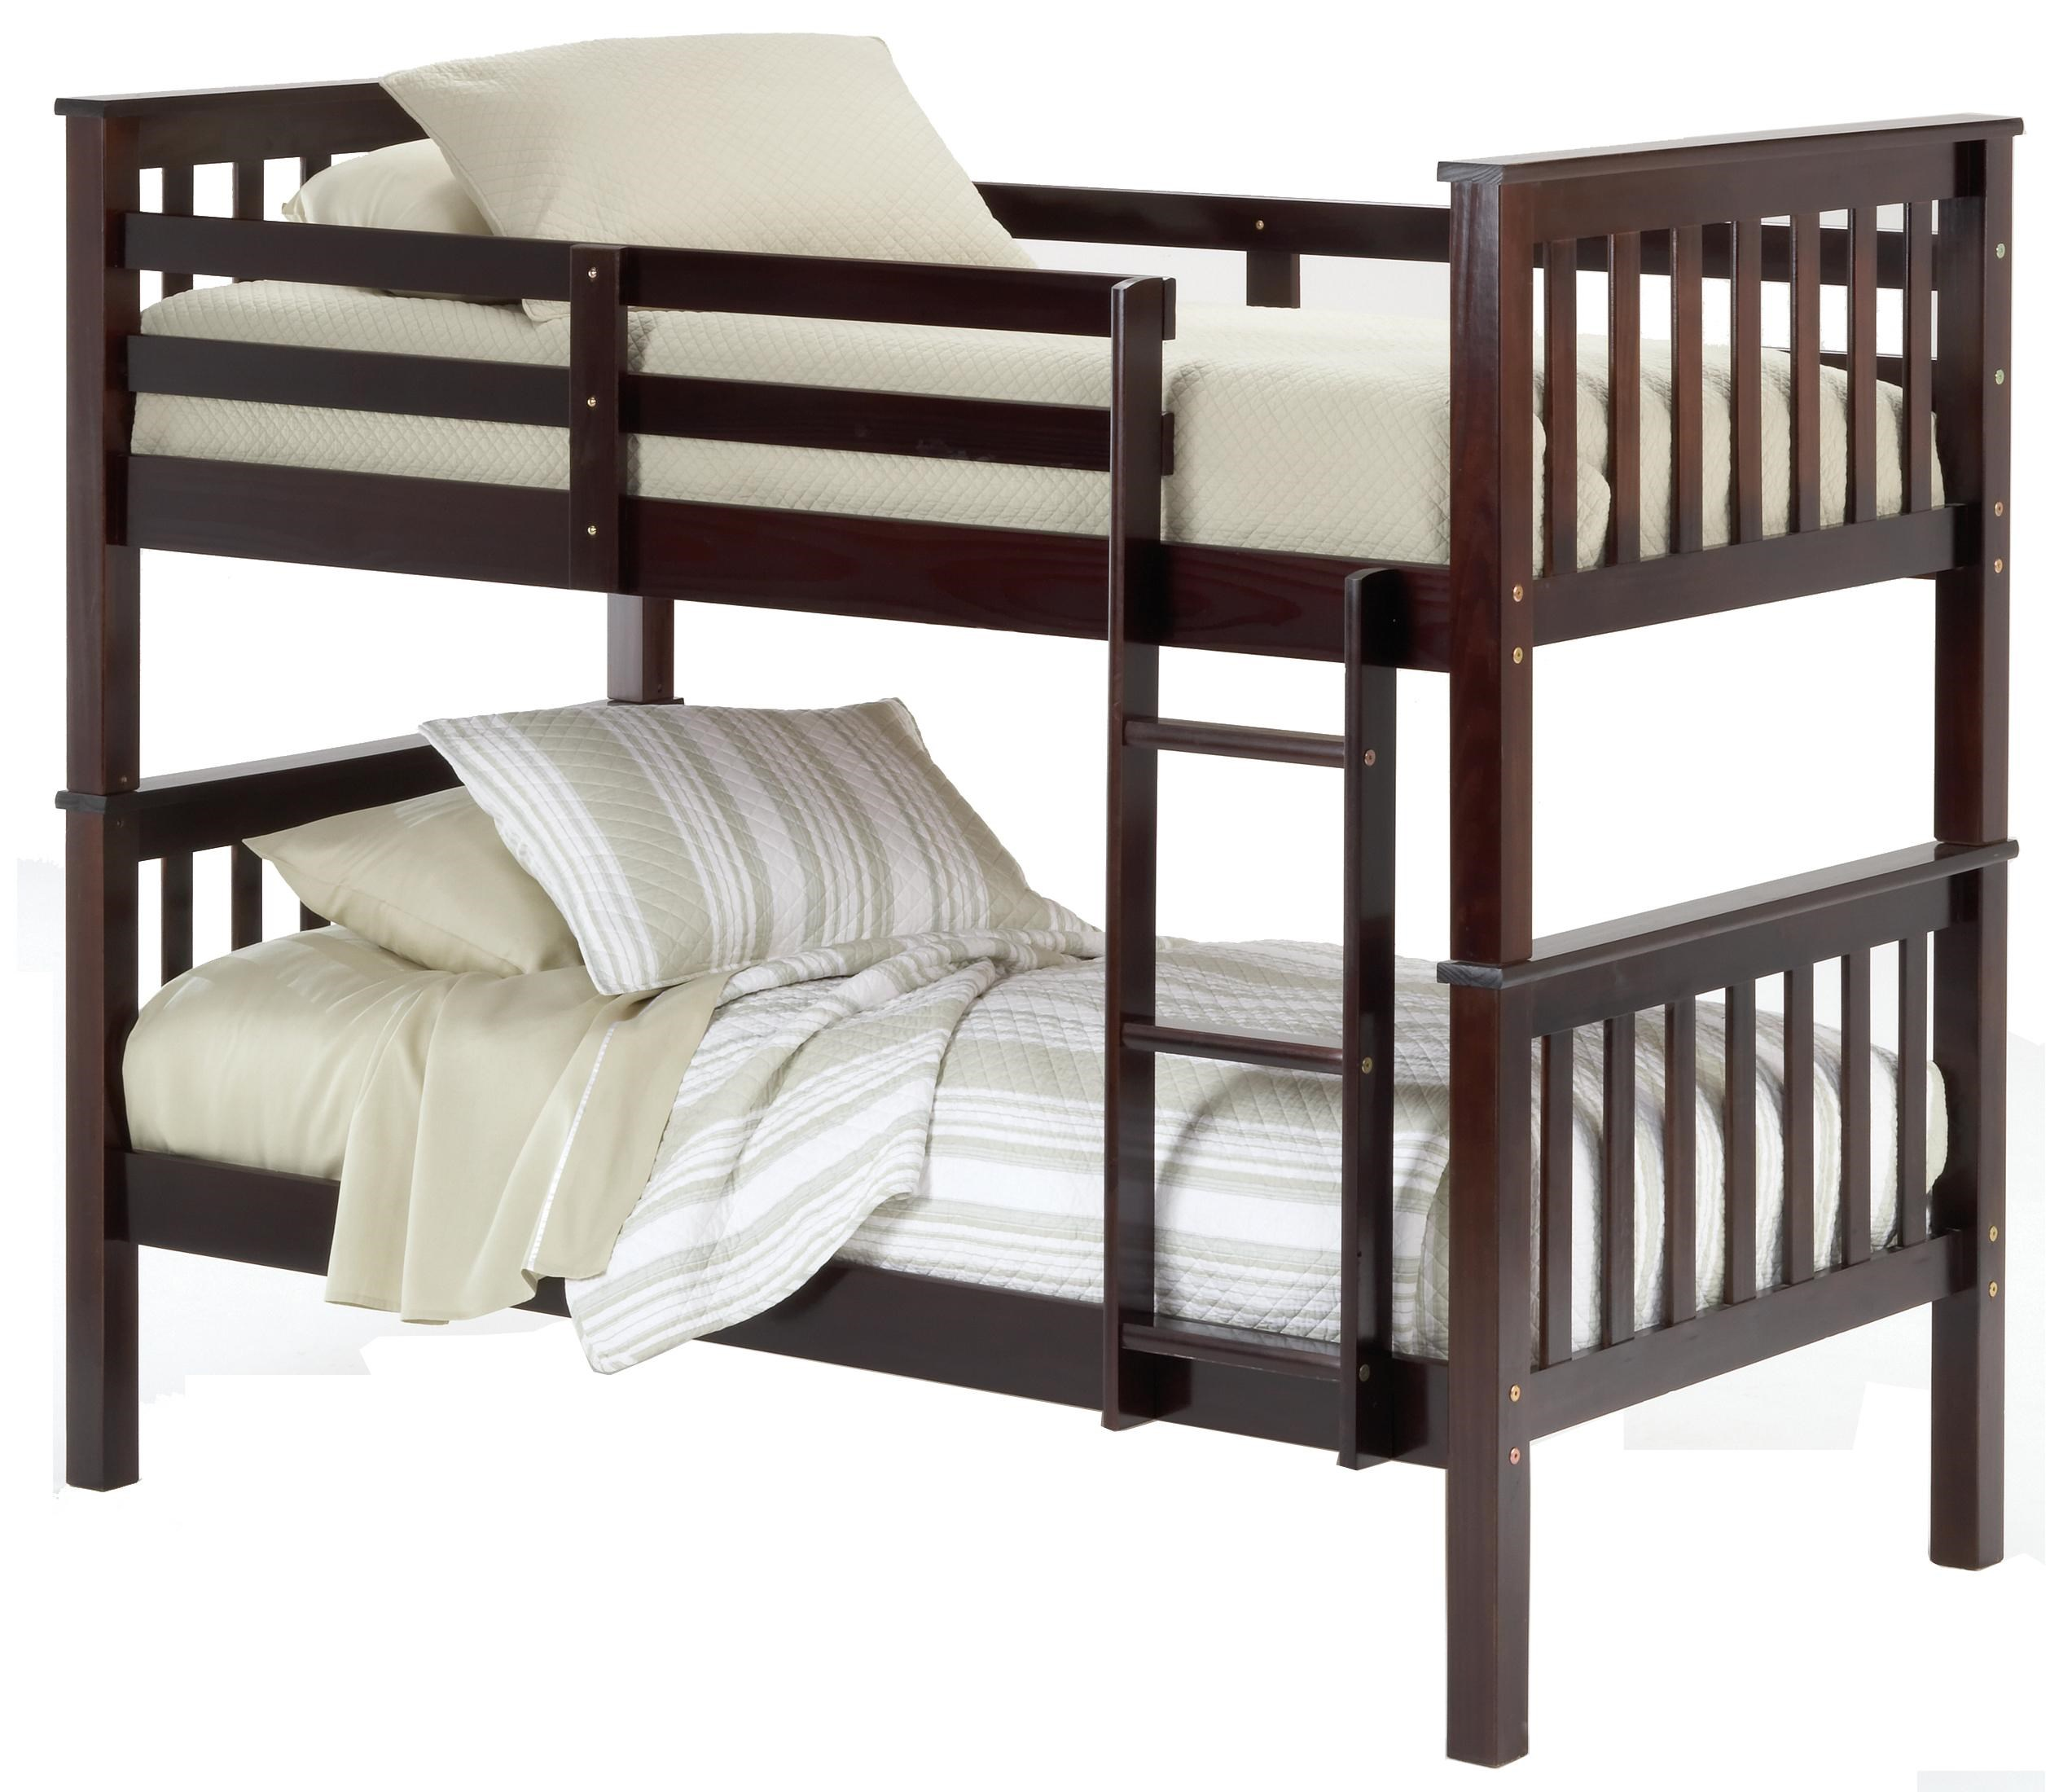 Merveilleux Bernards Sadler Merlot Finish Twin Bunk Bed